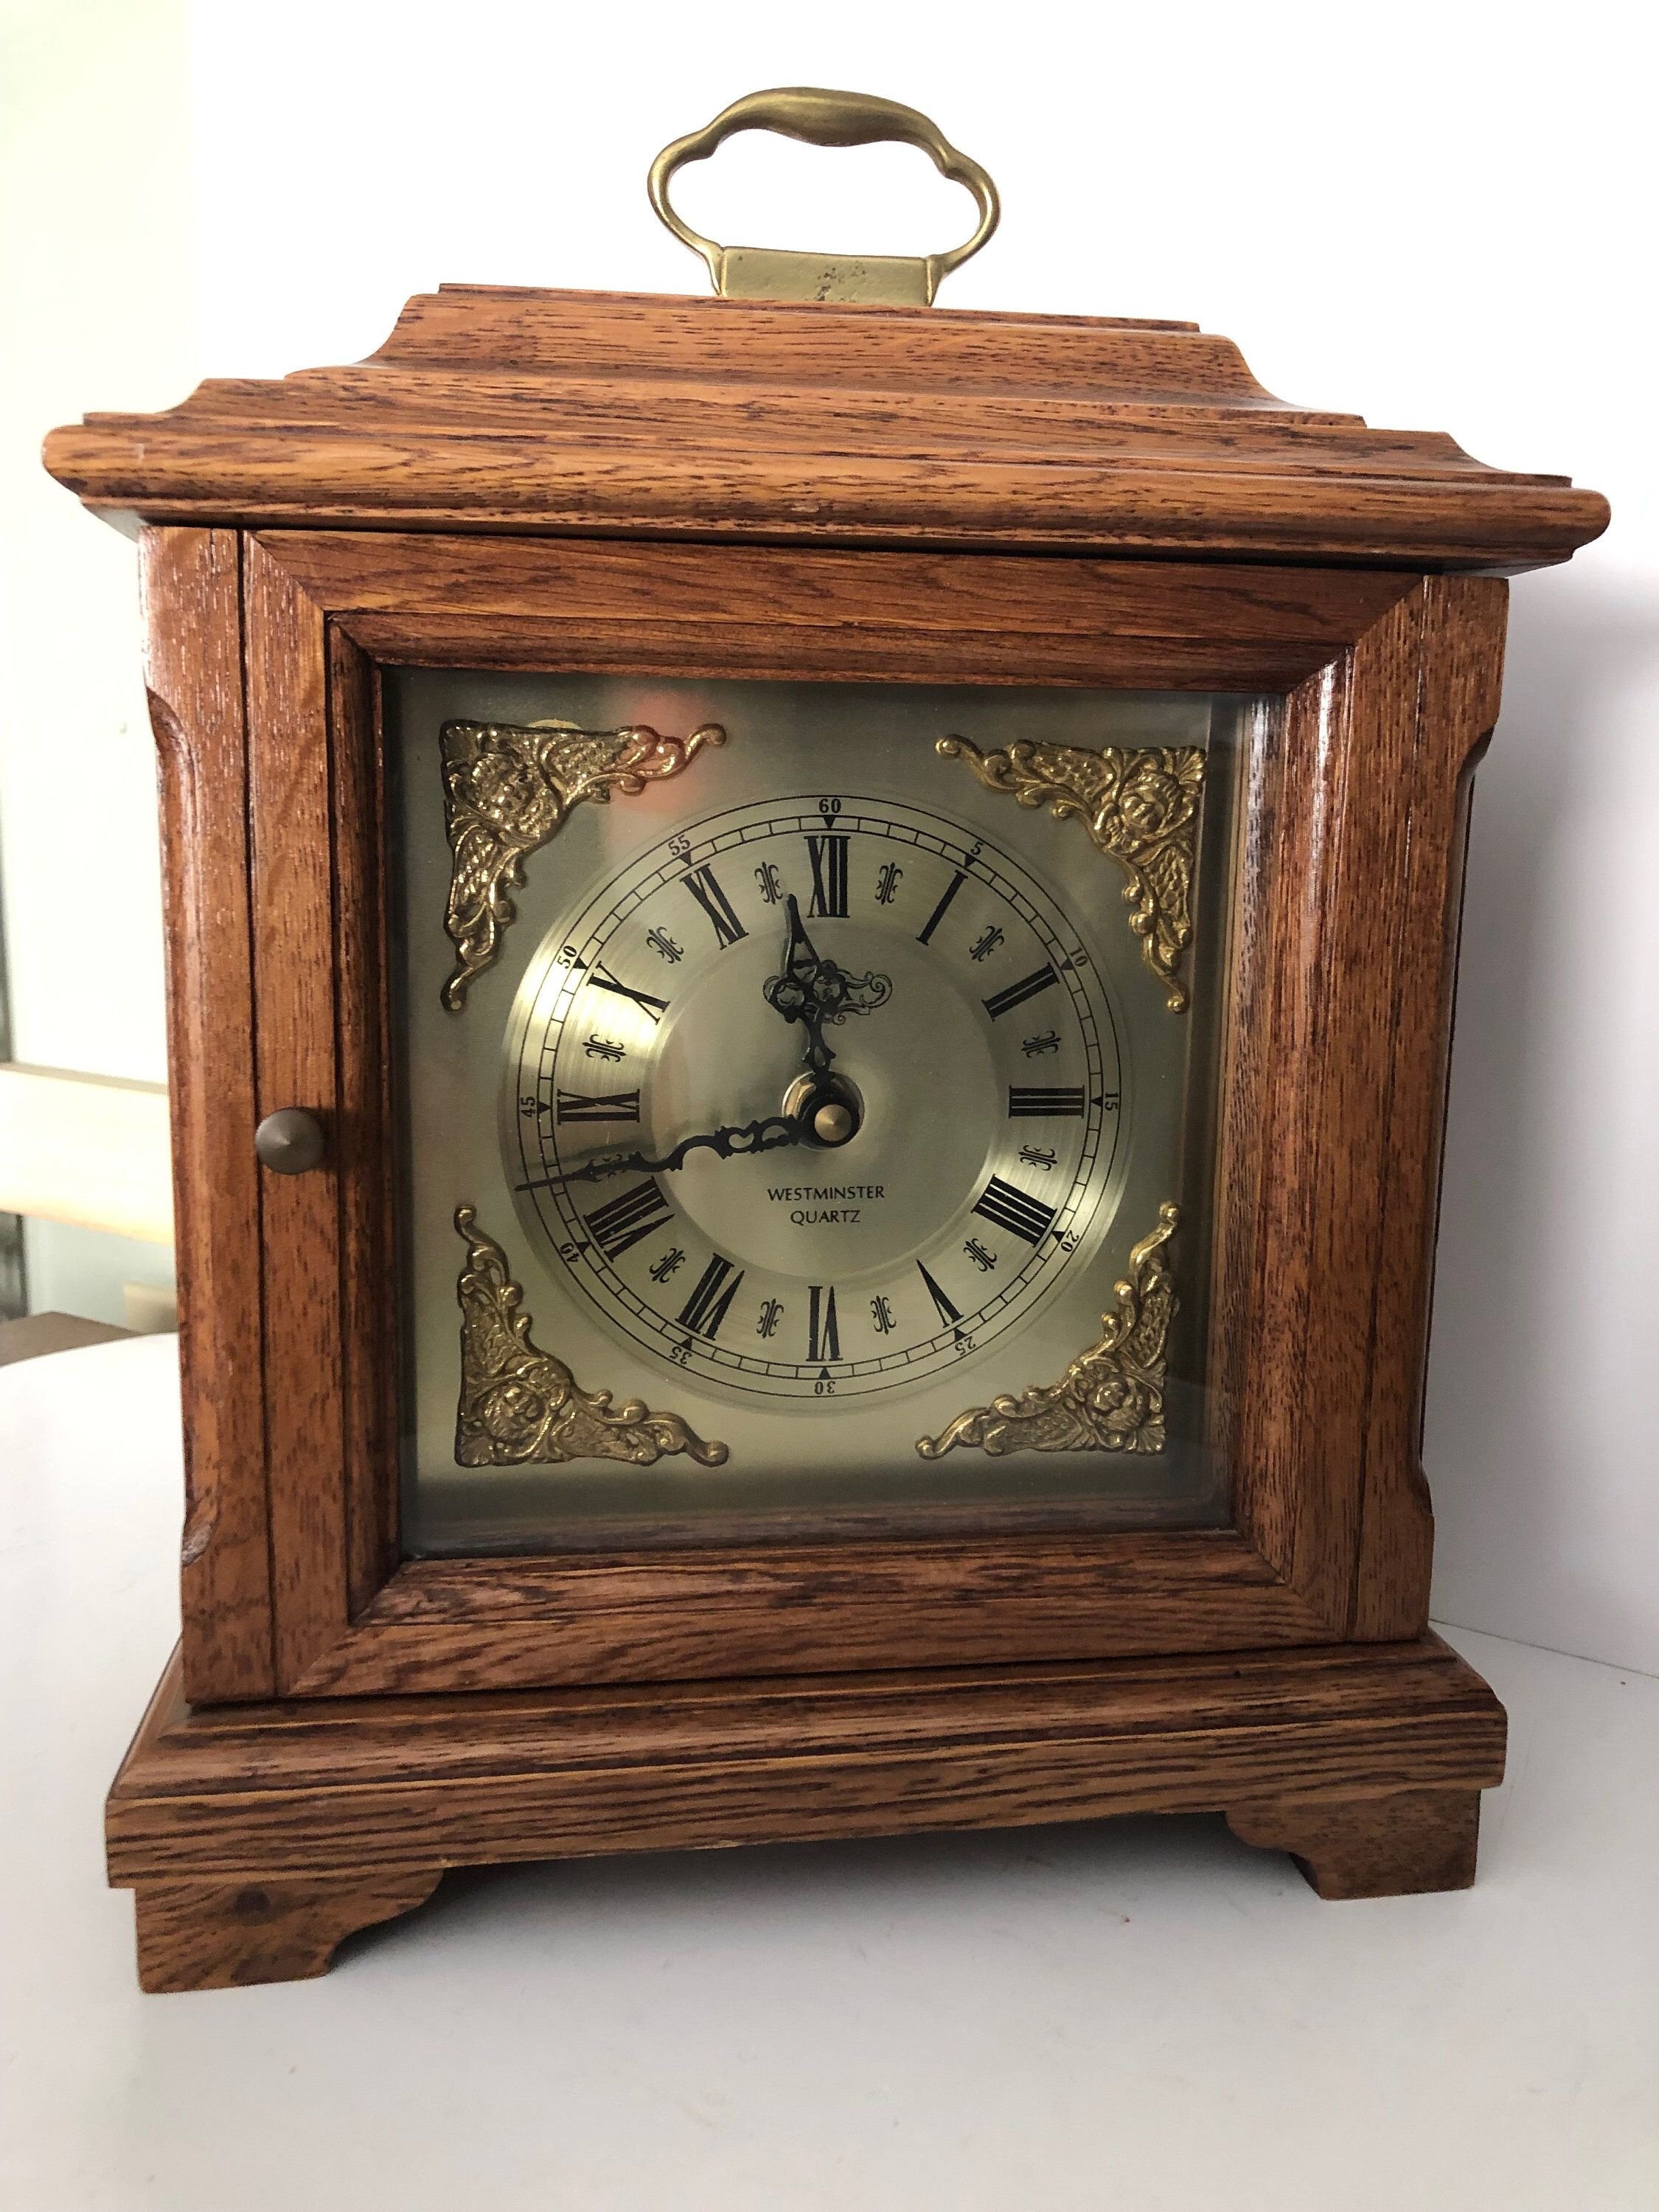 Excited To Share This Item From My Etsy Shop Vintage D A Westminster Quartz Carriage Clock With Chime Hou Antique Mantel Clocks Carriage Clocks Mantel Clock